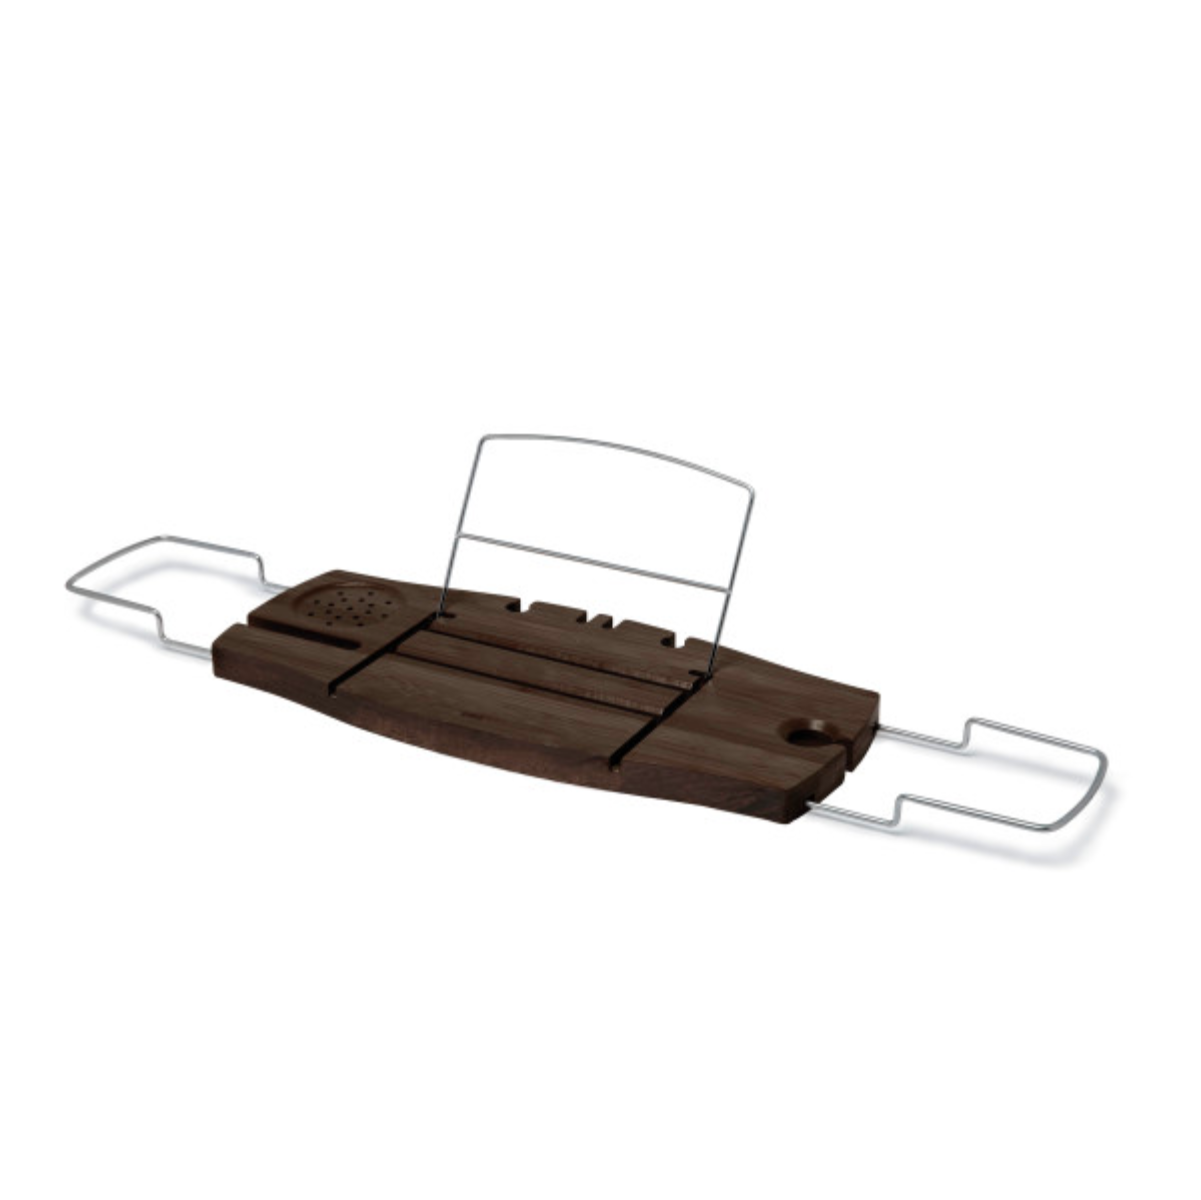 Umbra Aquala bathtub caddy, walnut